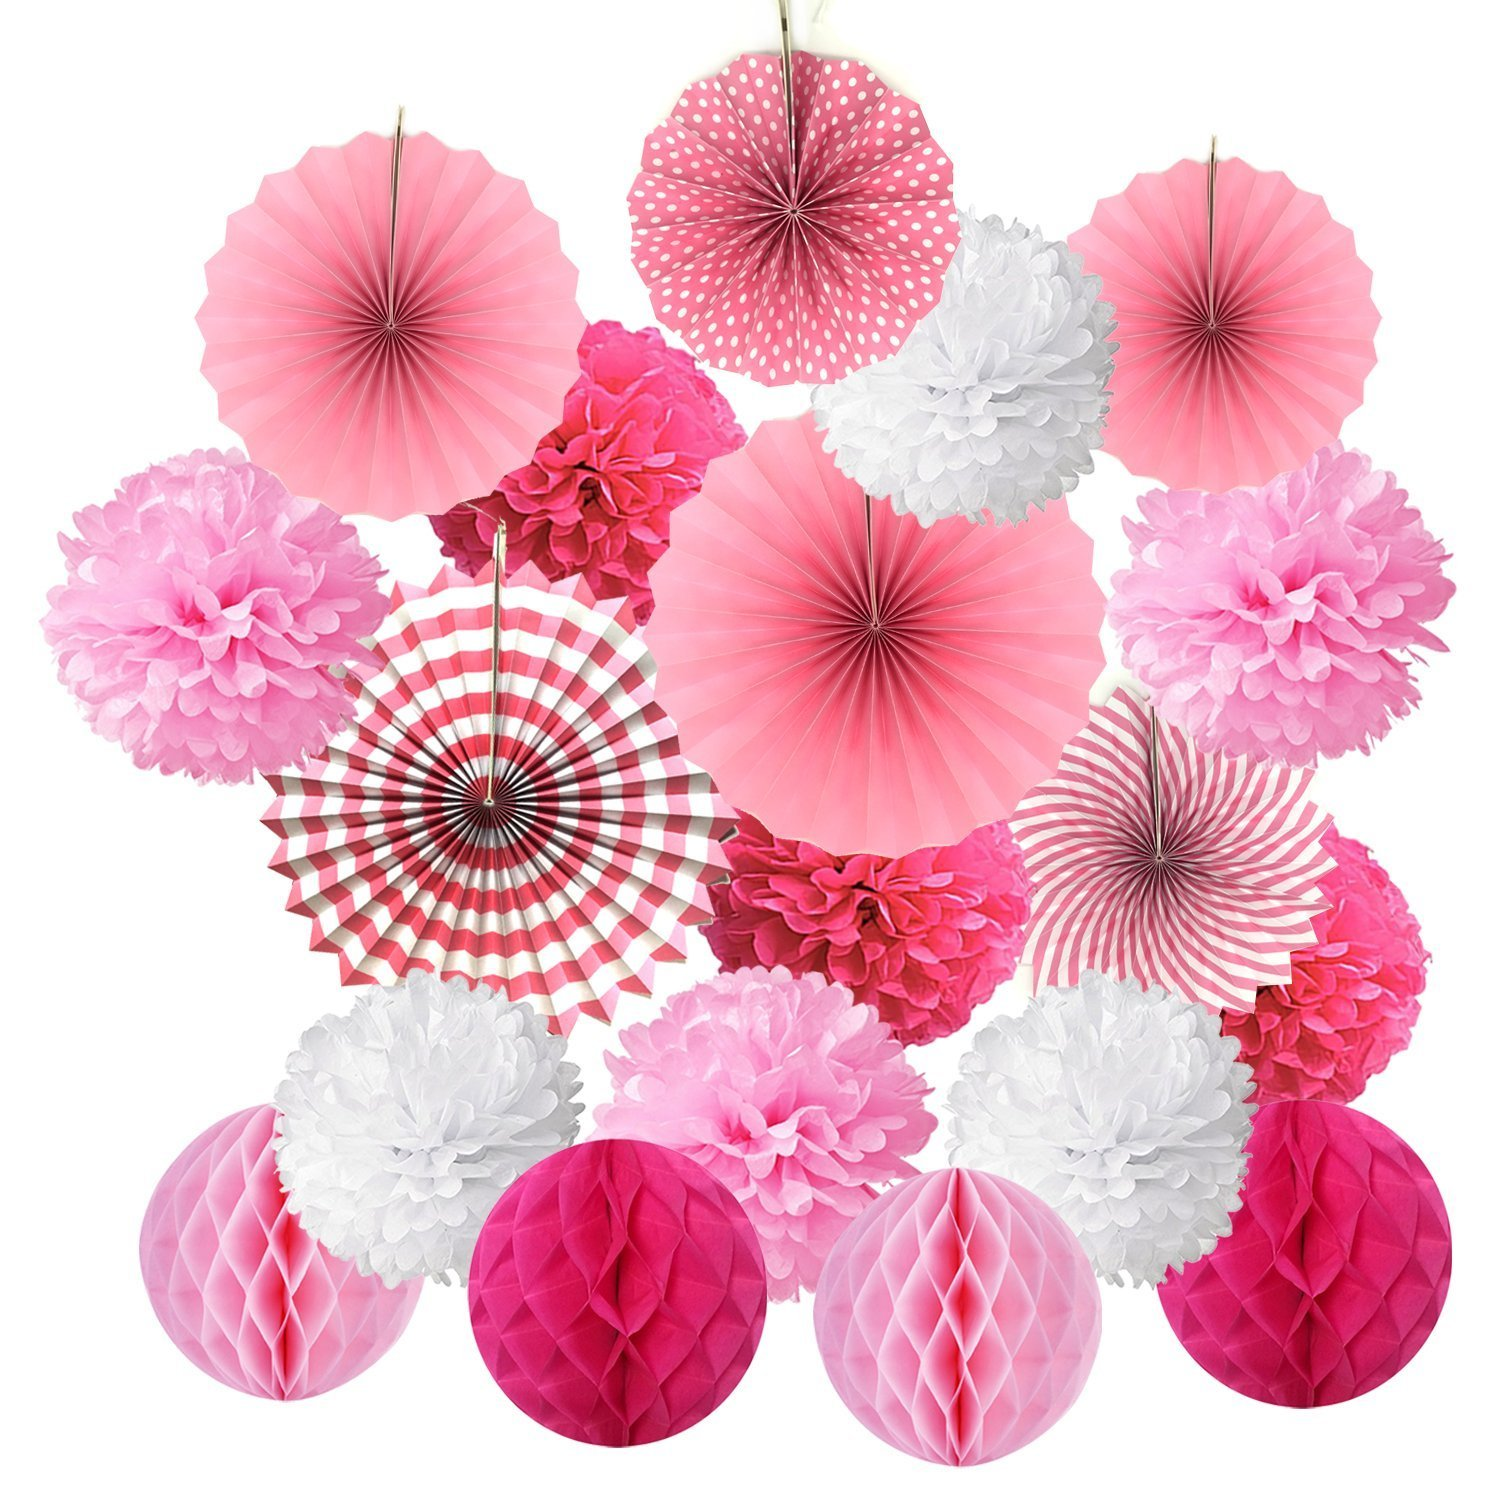 20pcs Hanging Paper Fans Set, Tissue Paper Pom Poms Flower Honeycomb Balls Garlands Decorations for Christmas Party Birthday Wedding Mexican Fiesta Events Accessories, Home Decor Supplies (Blue) FENGMANG